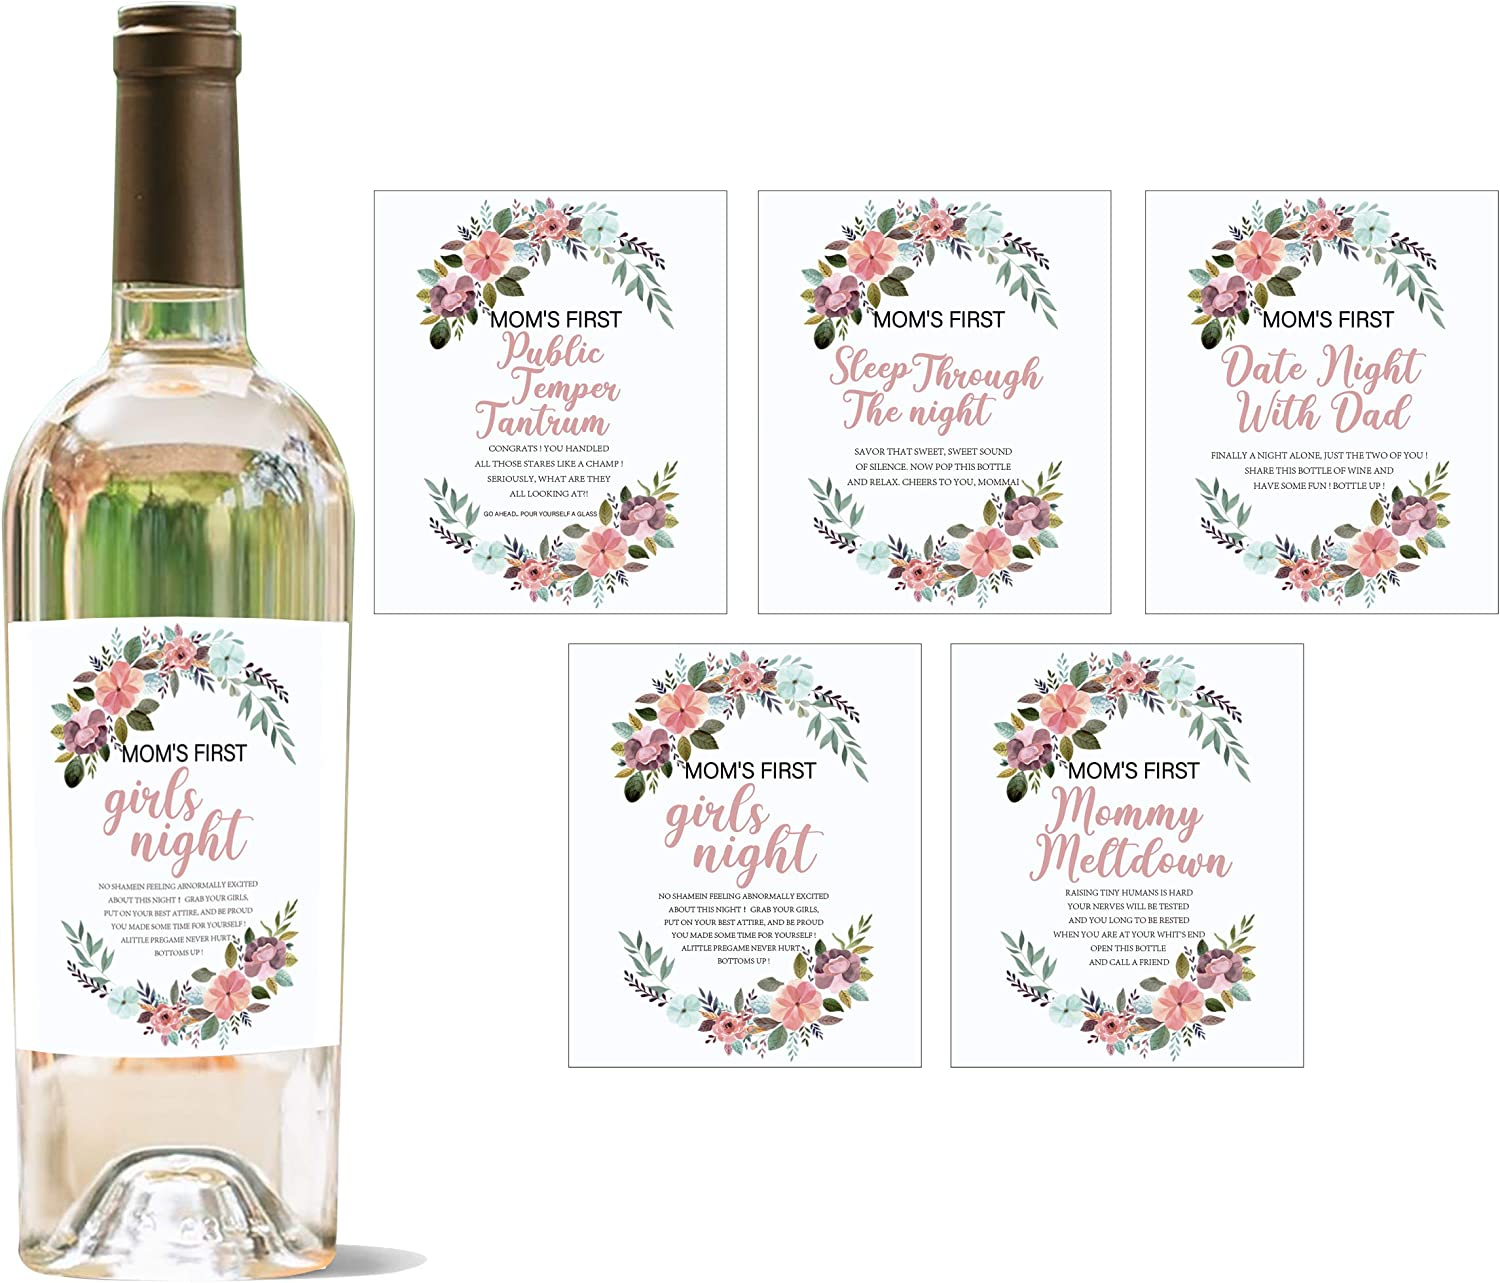 YouFangworkshop Mommy's First Milestone Wine Bottle Labels, Set of 5 Waterproof Wine Bottle Sticker Covers, Great Baby Shower Ideas for Mom to Be, Pregnancy for New Mom